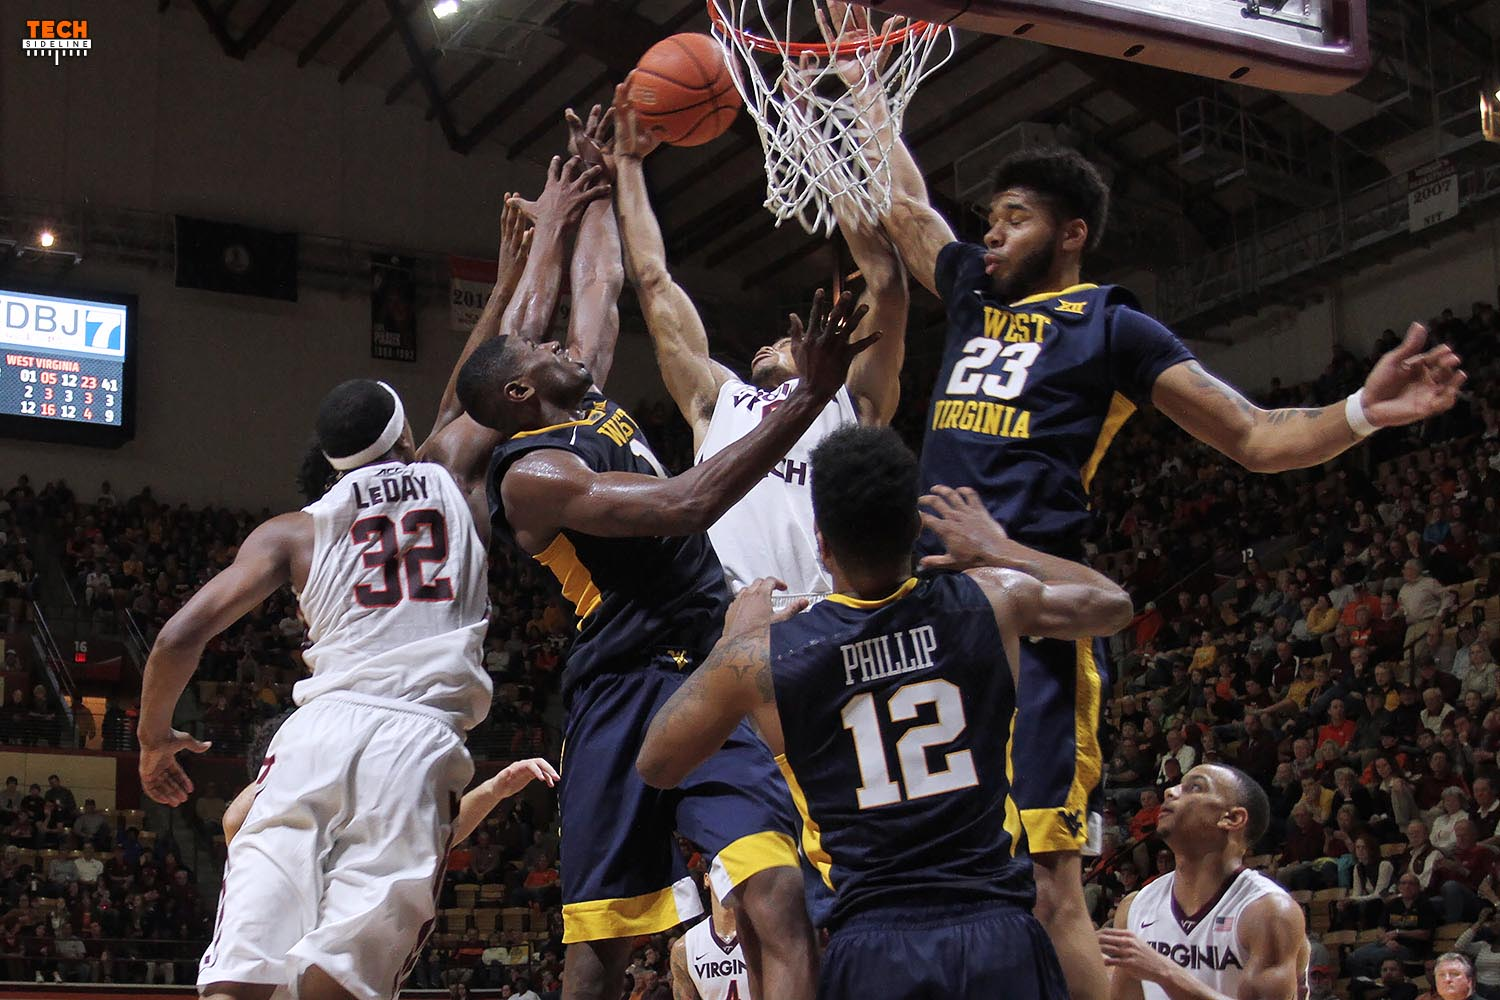 On December 30th, WVU mauled the Hokies, and things looked grim.